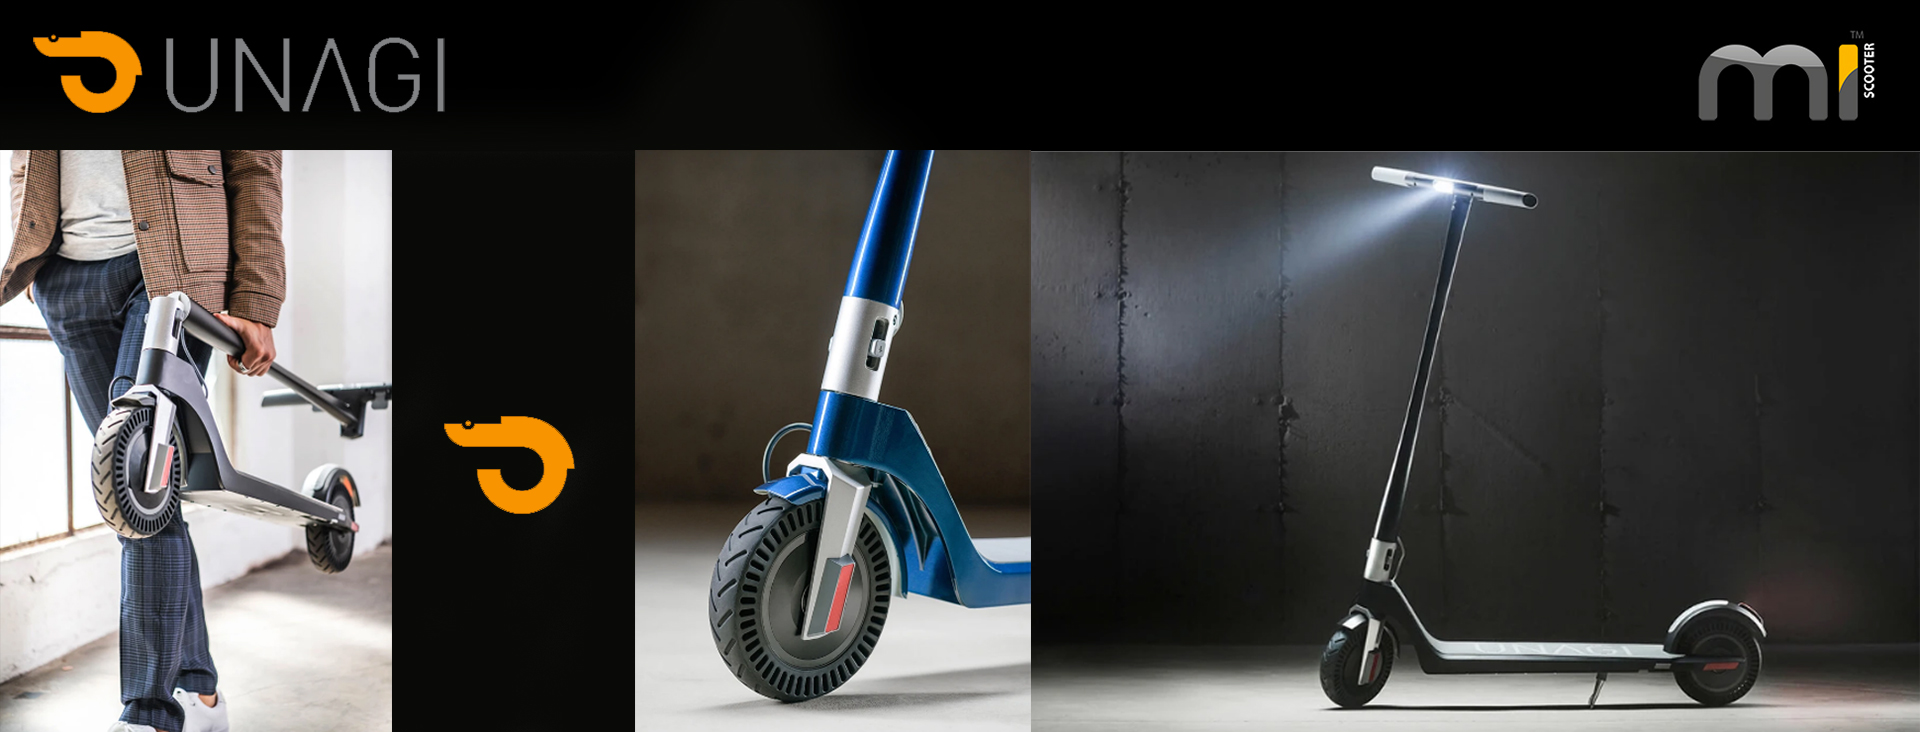 Unagi Electric Scooters - UK Approved Supplier- East Midlands - Nottingham - Derby - London